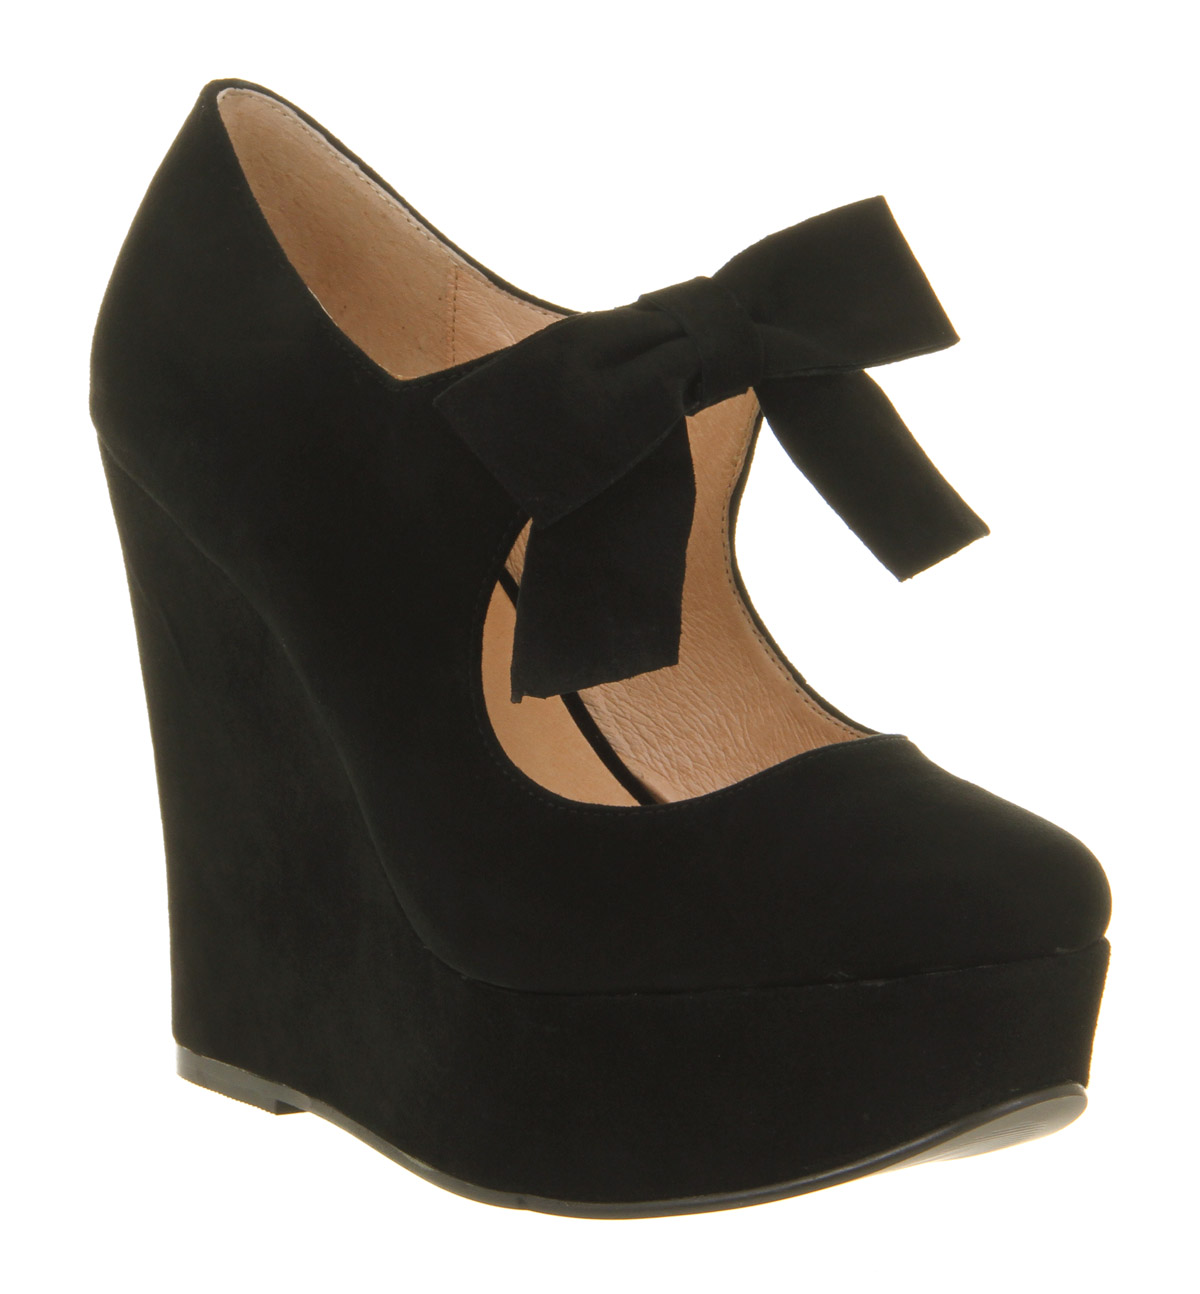 Black Wedges Heels